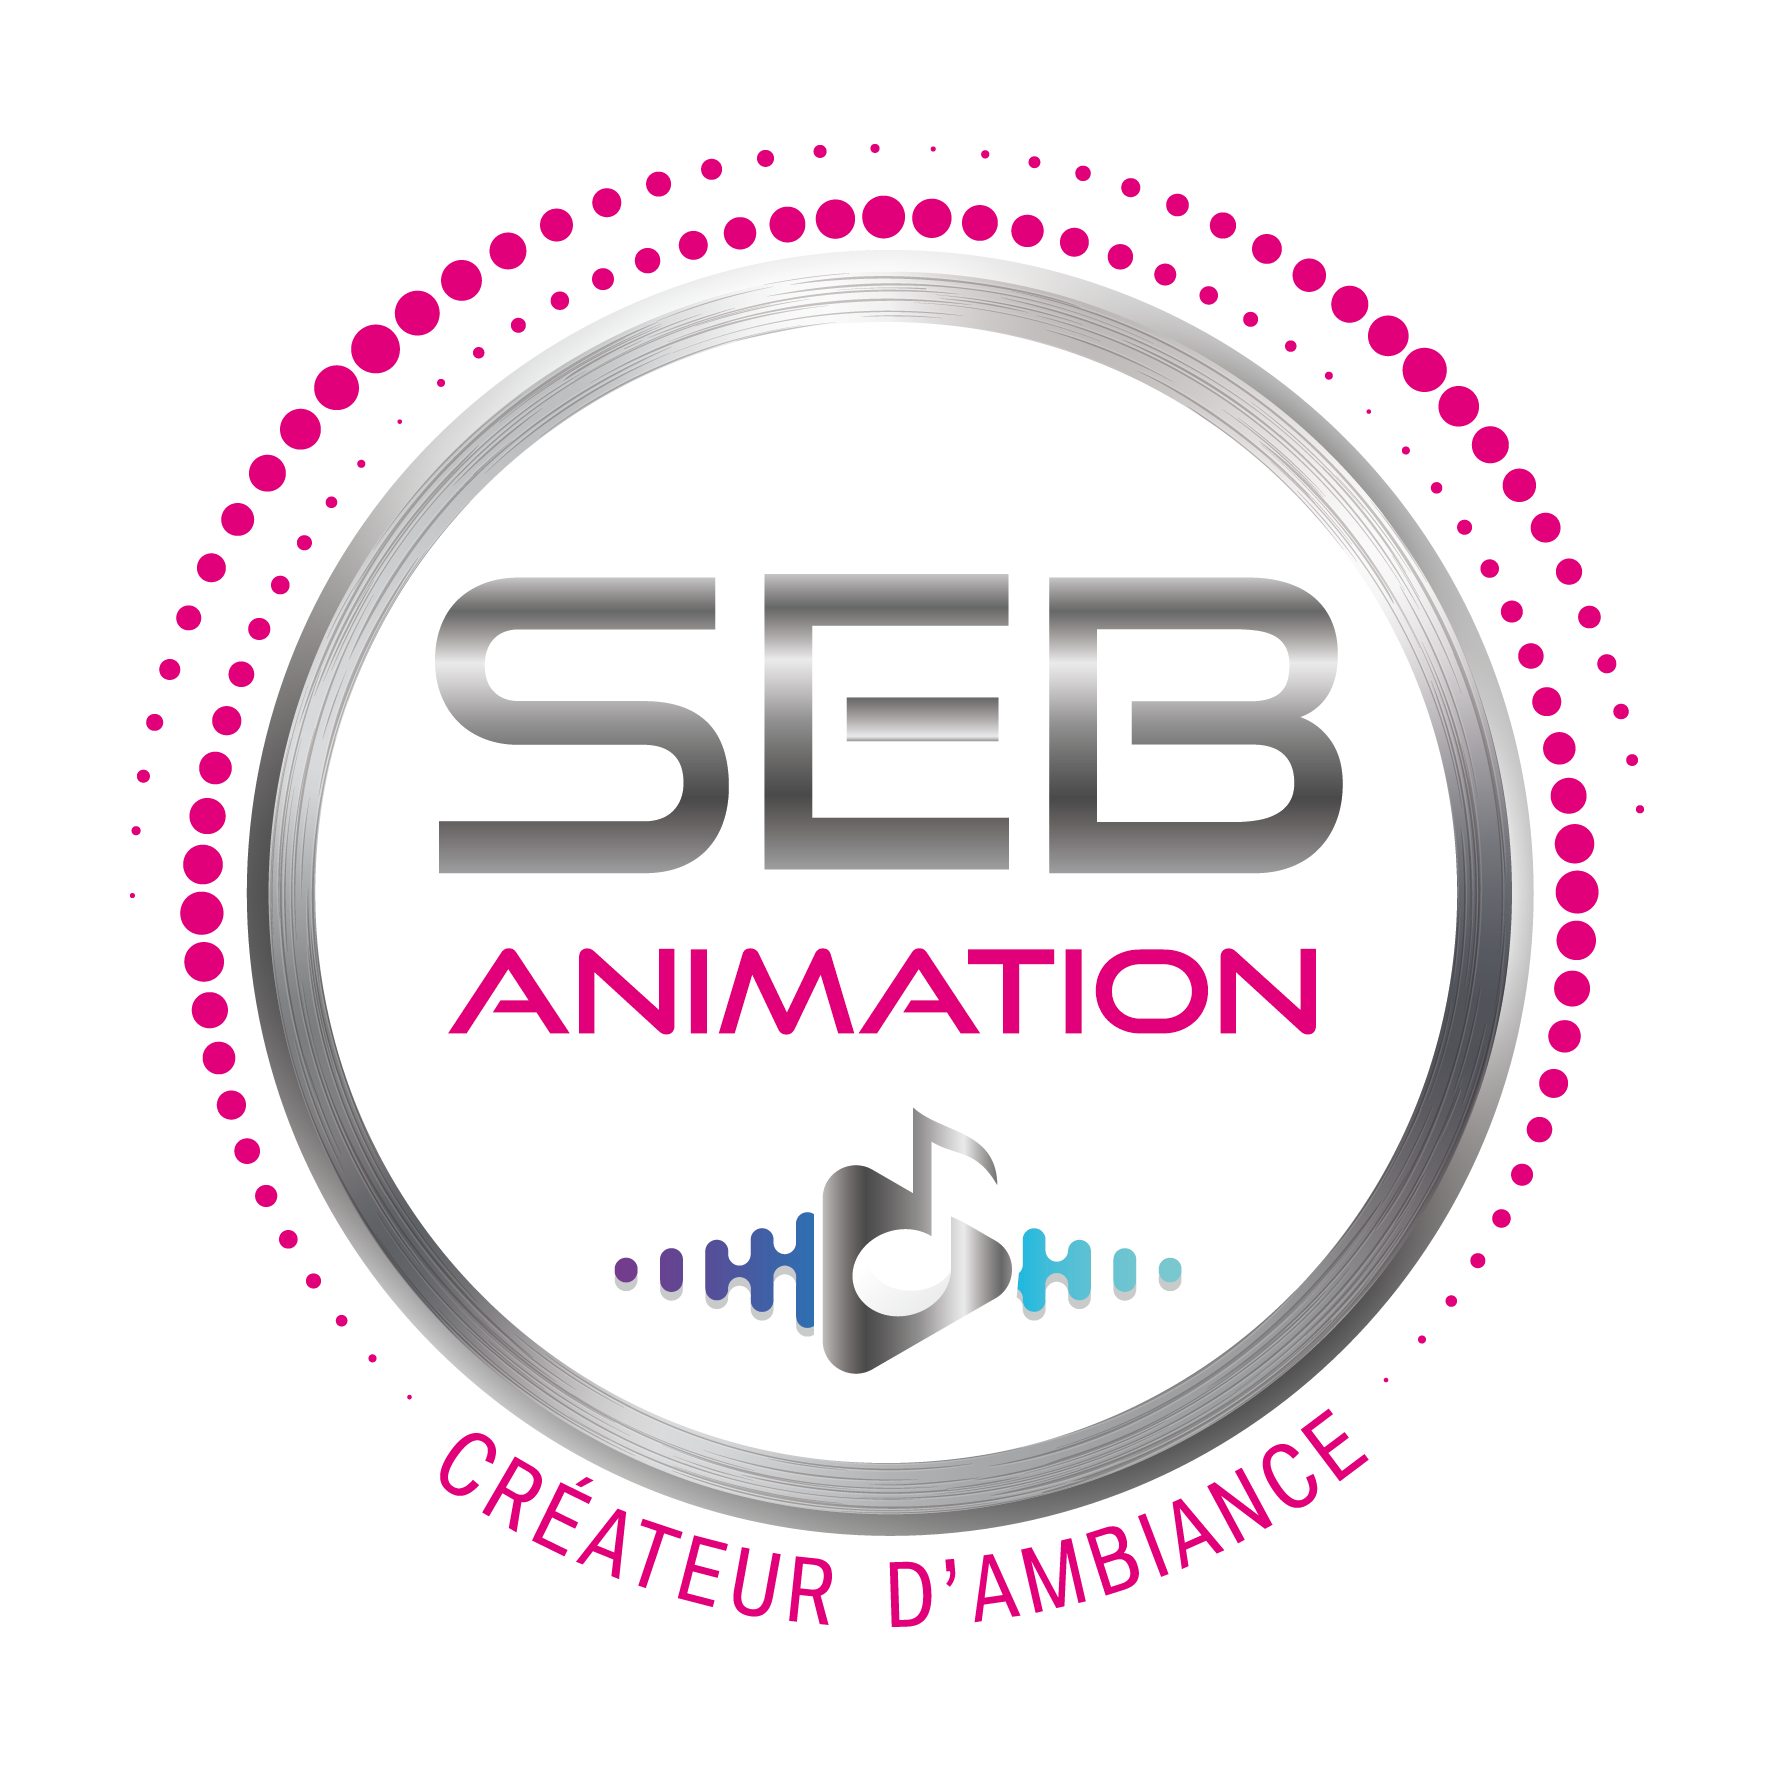 Seb Animation 2021